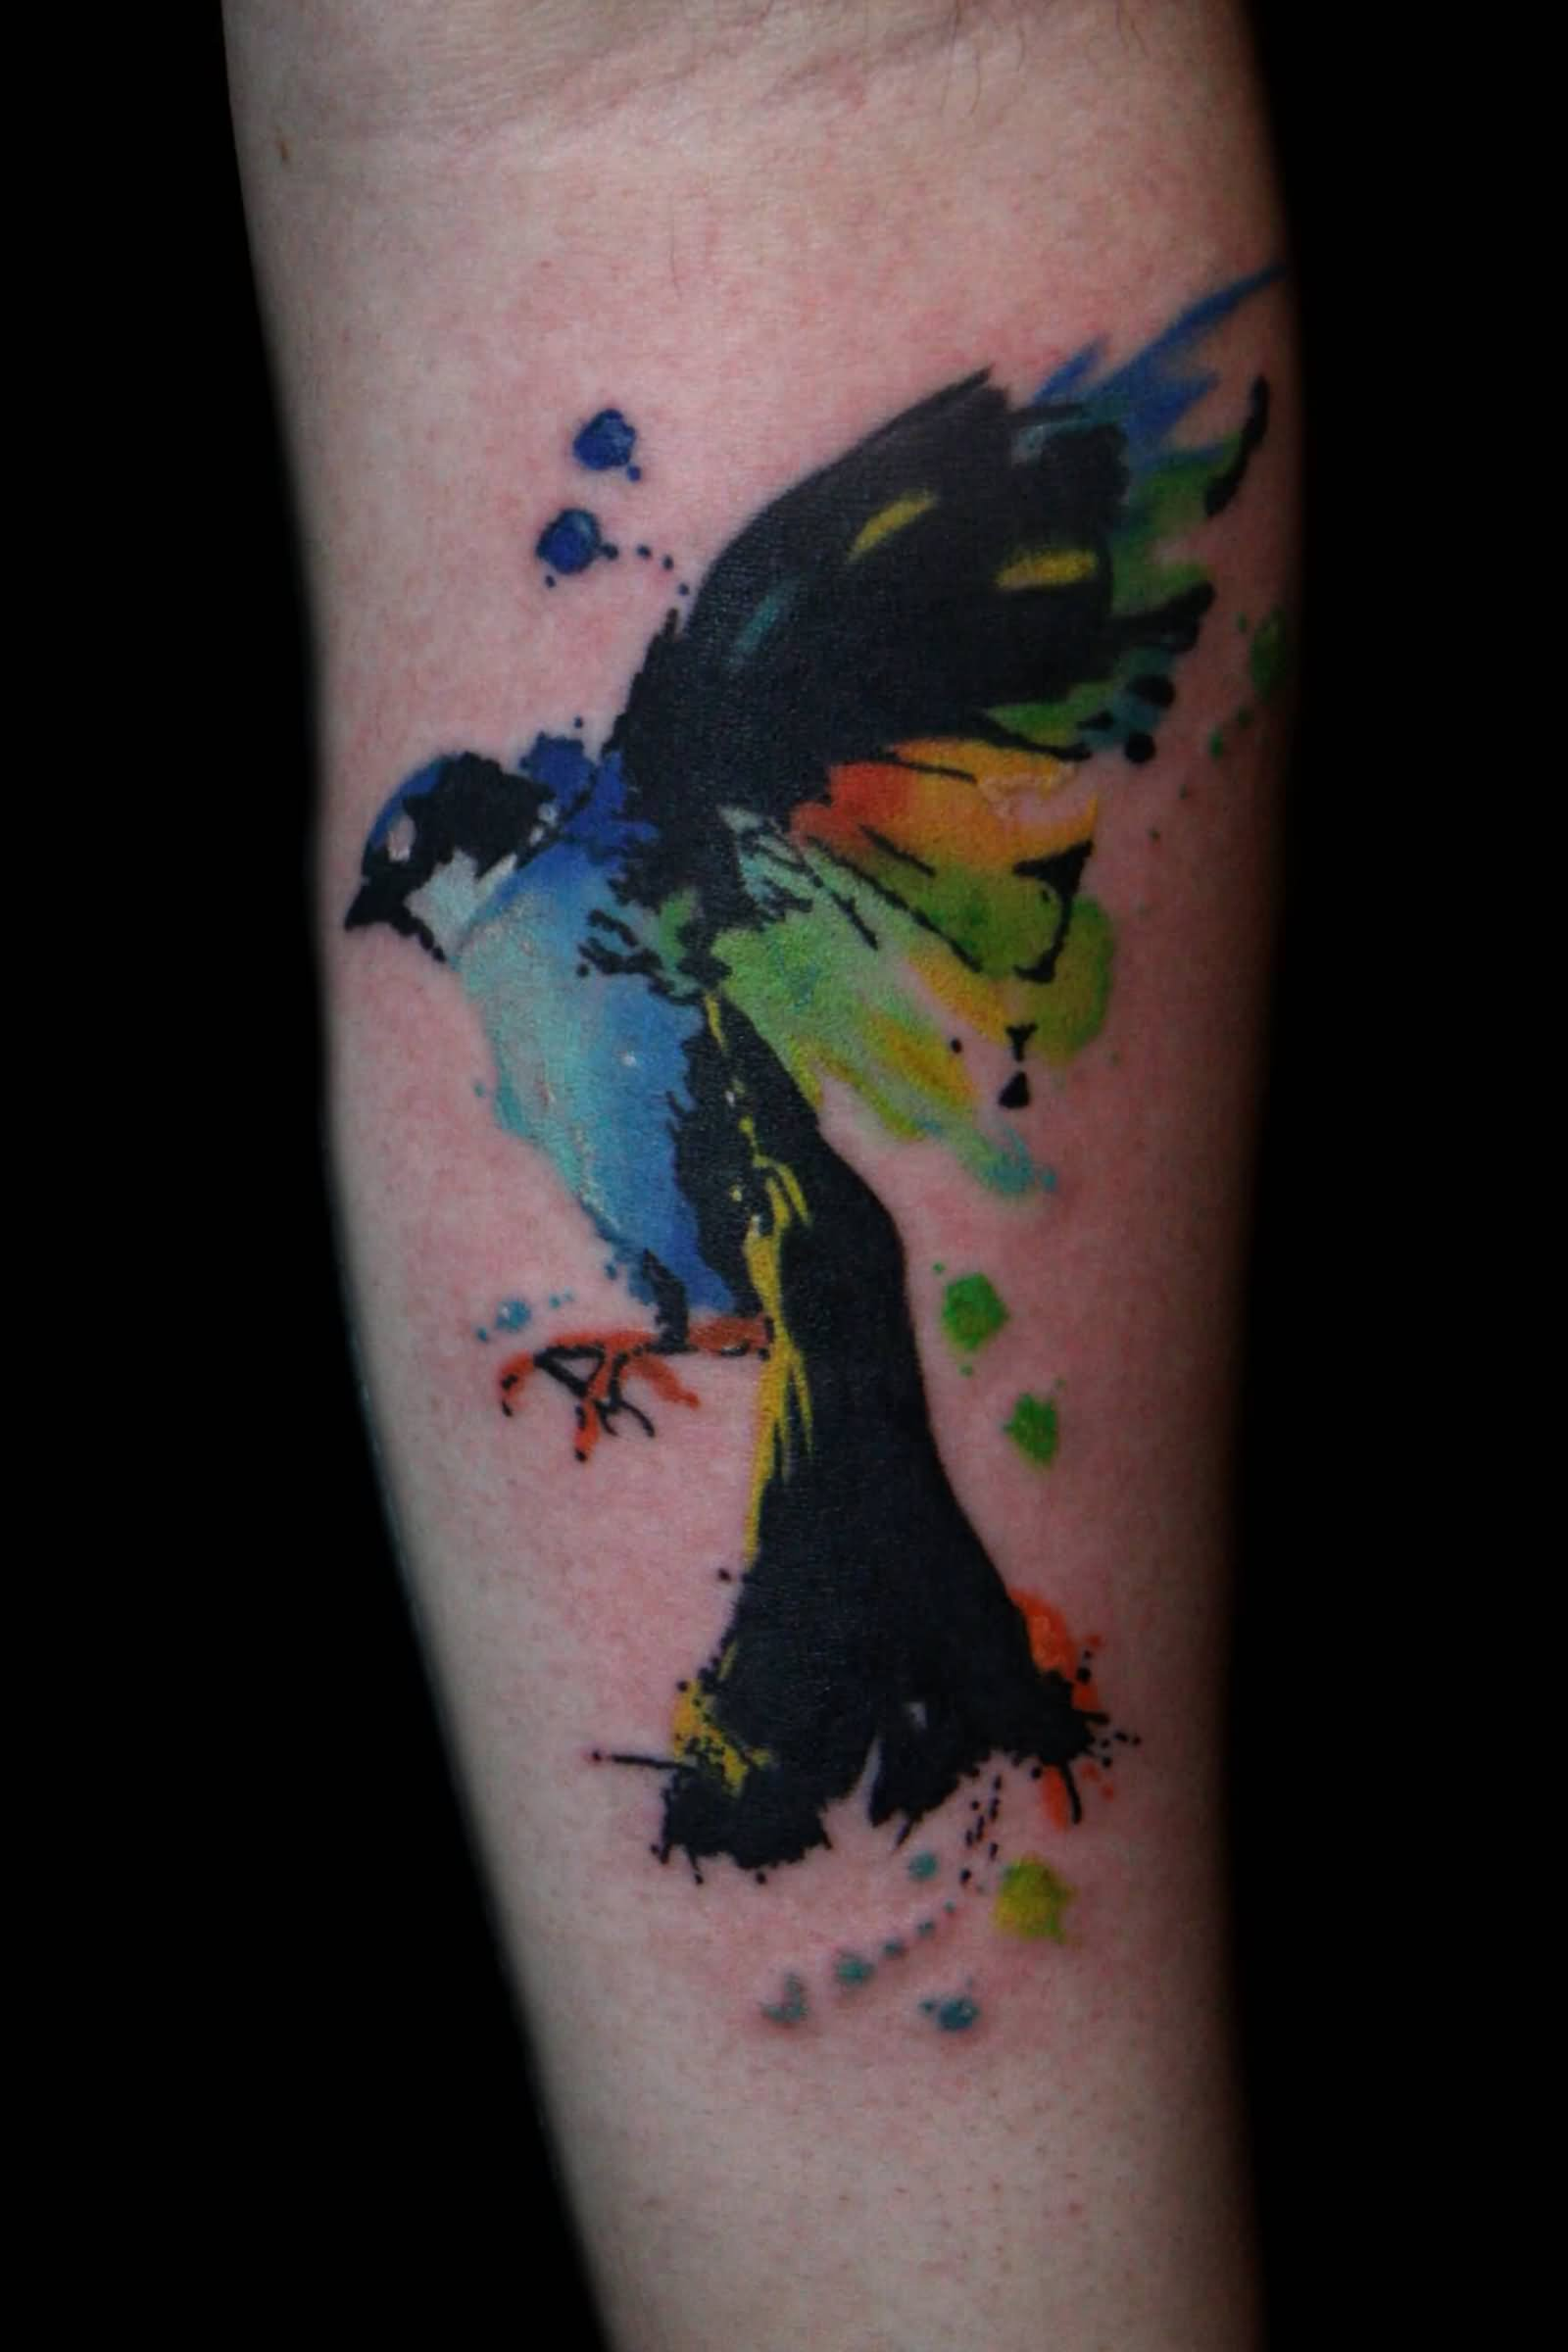 29 Fantastic Watercolor Bird Tattoos Ideas And Designs